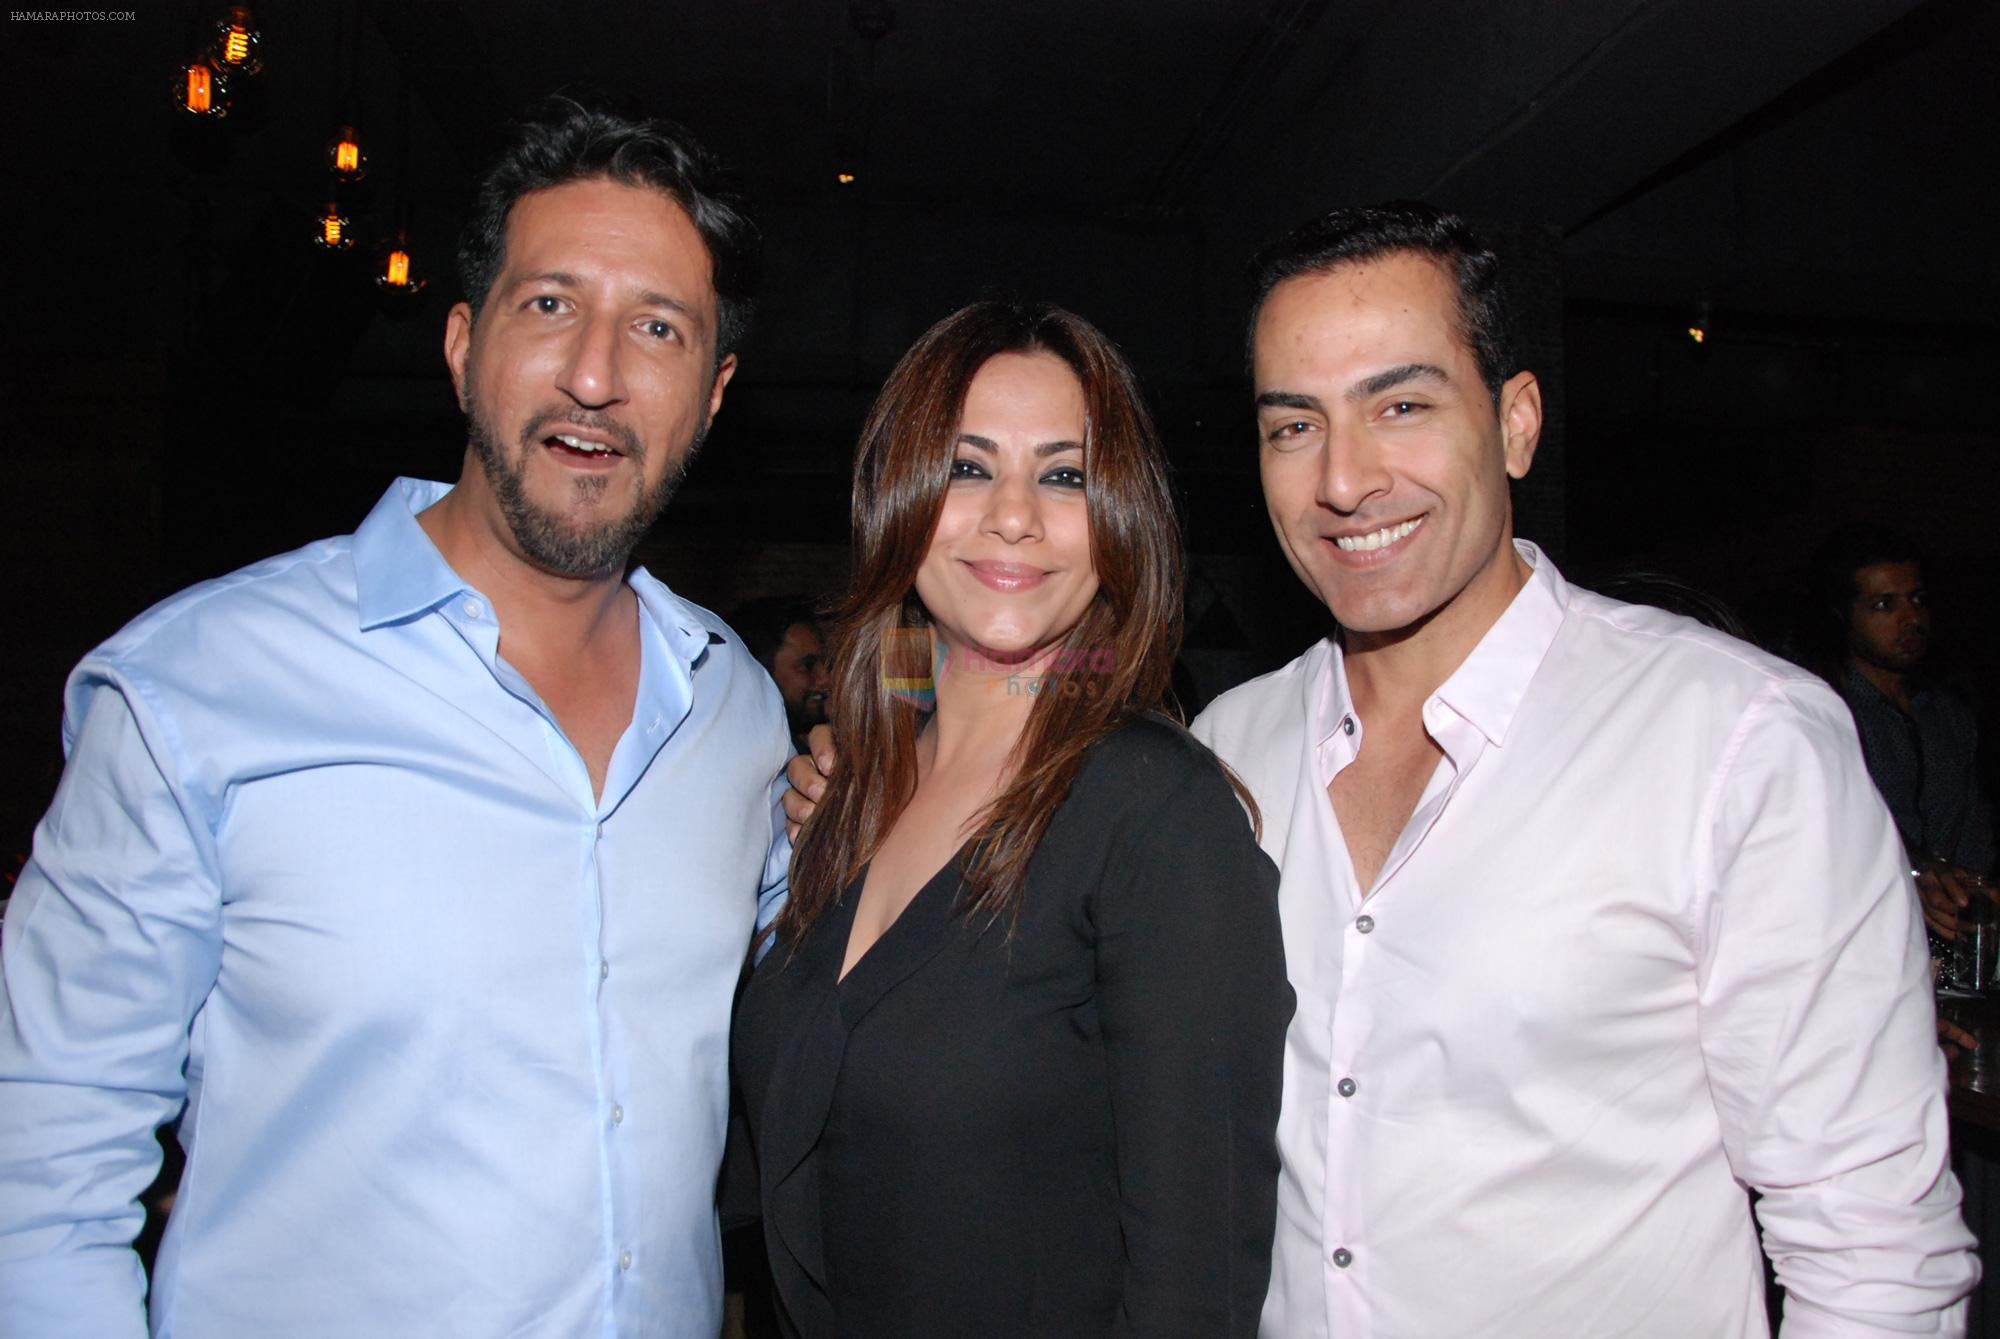 Sulaiman Merchant and wife with sudhanshu pandey at Harry's Bar & cafe